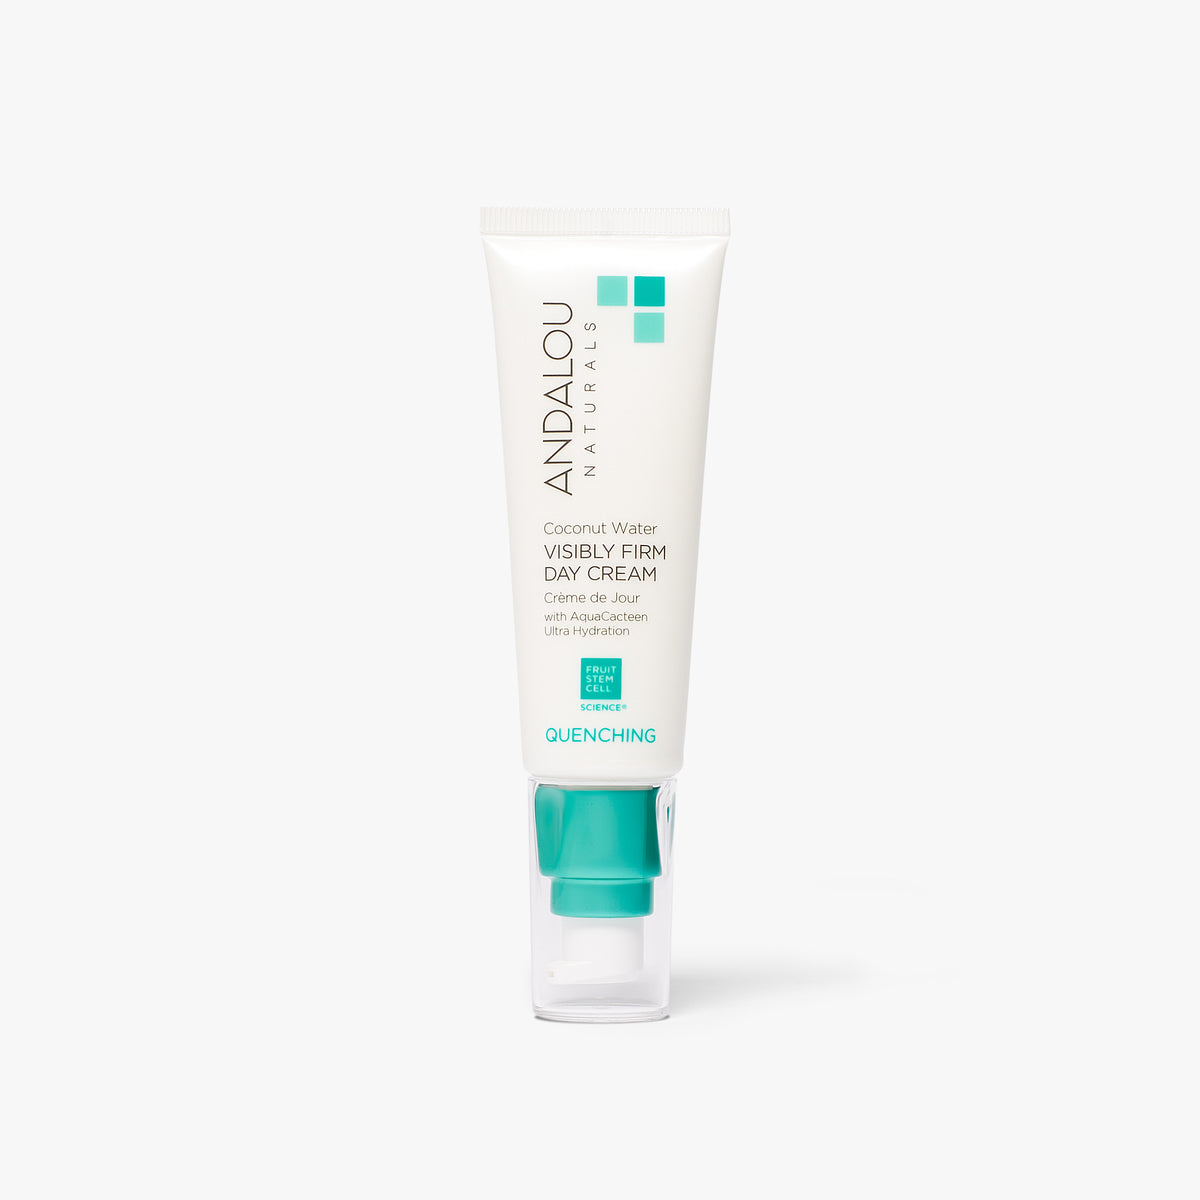 Quenching Coconut Water Visibly Firm Day Cream